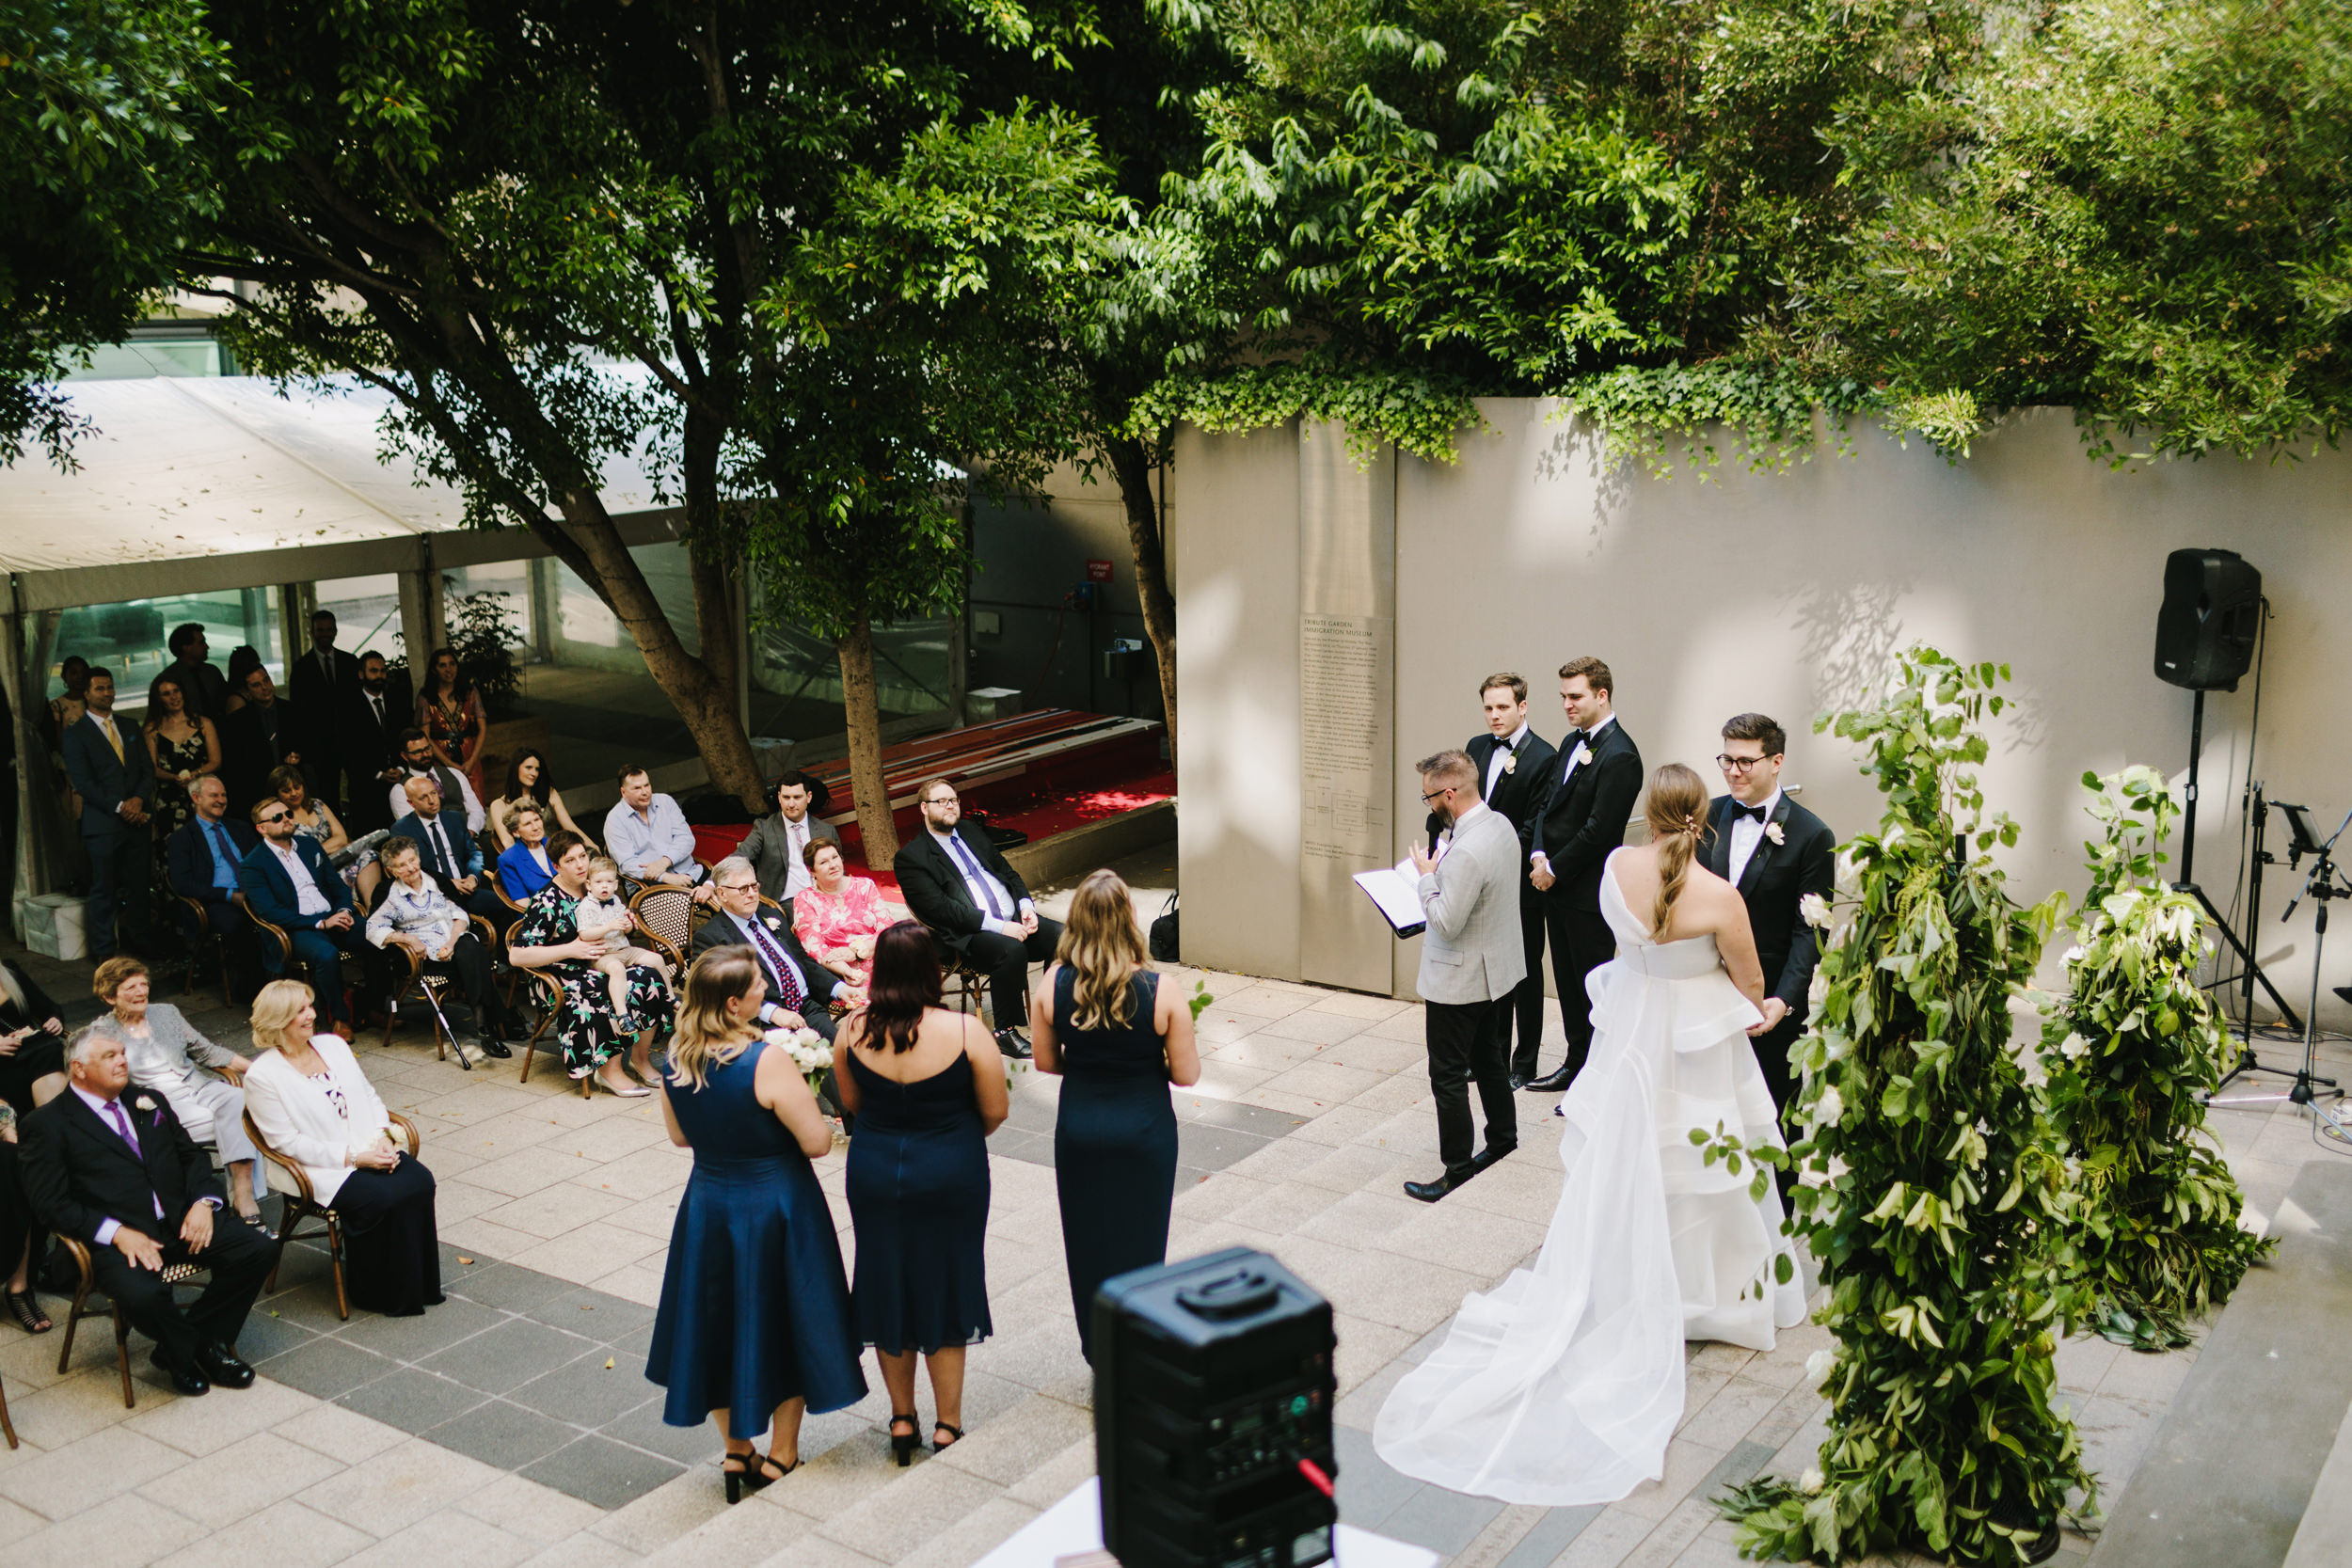 Melbourne_City_Rooftop_Wedding_Tyson_Brigette053.JPG